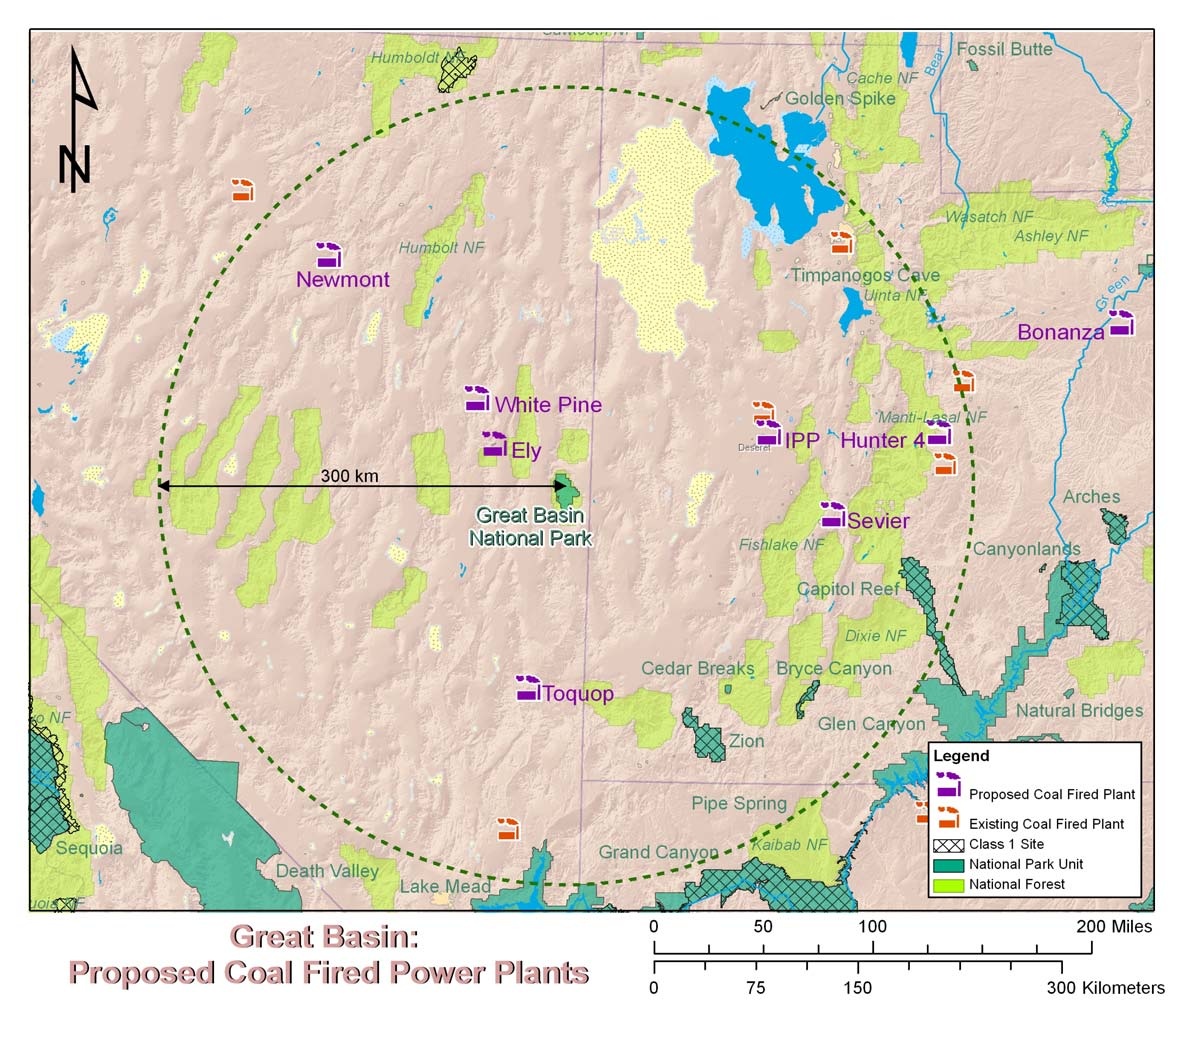 Power plants that have received permits or are in active permit process Plant Location Owner Size (MW) Distance from Park CO2 tons/yr SO2 tons/yr NOx tons/yr White Pine White Pine Energy 1,590